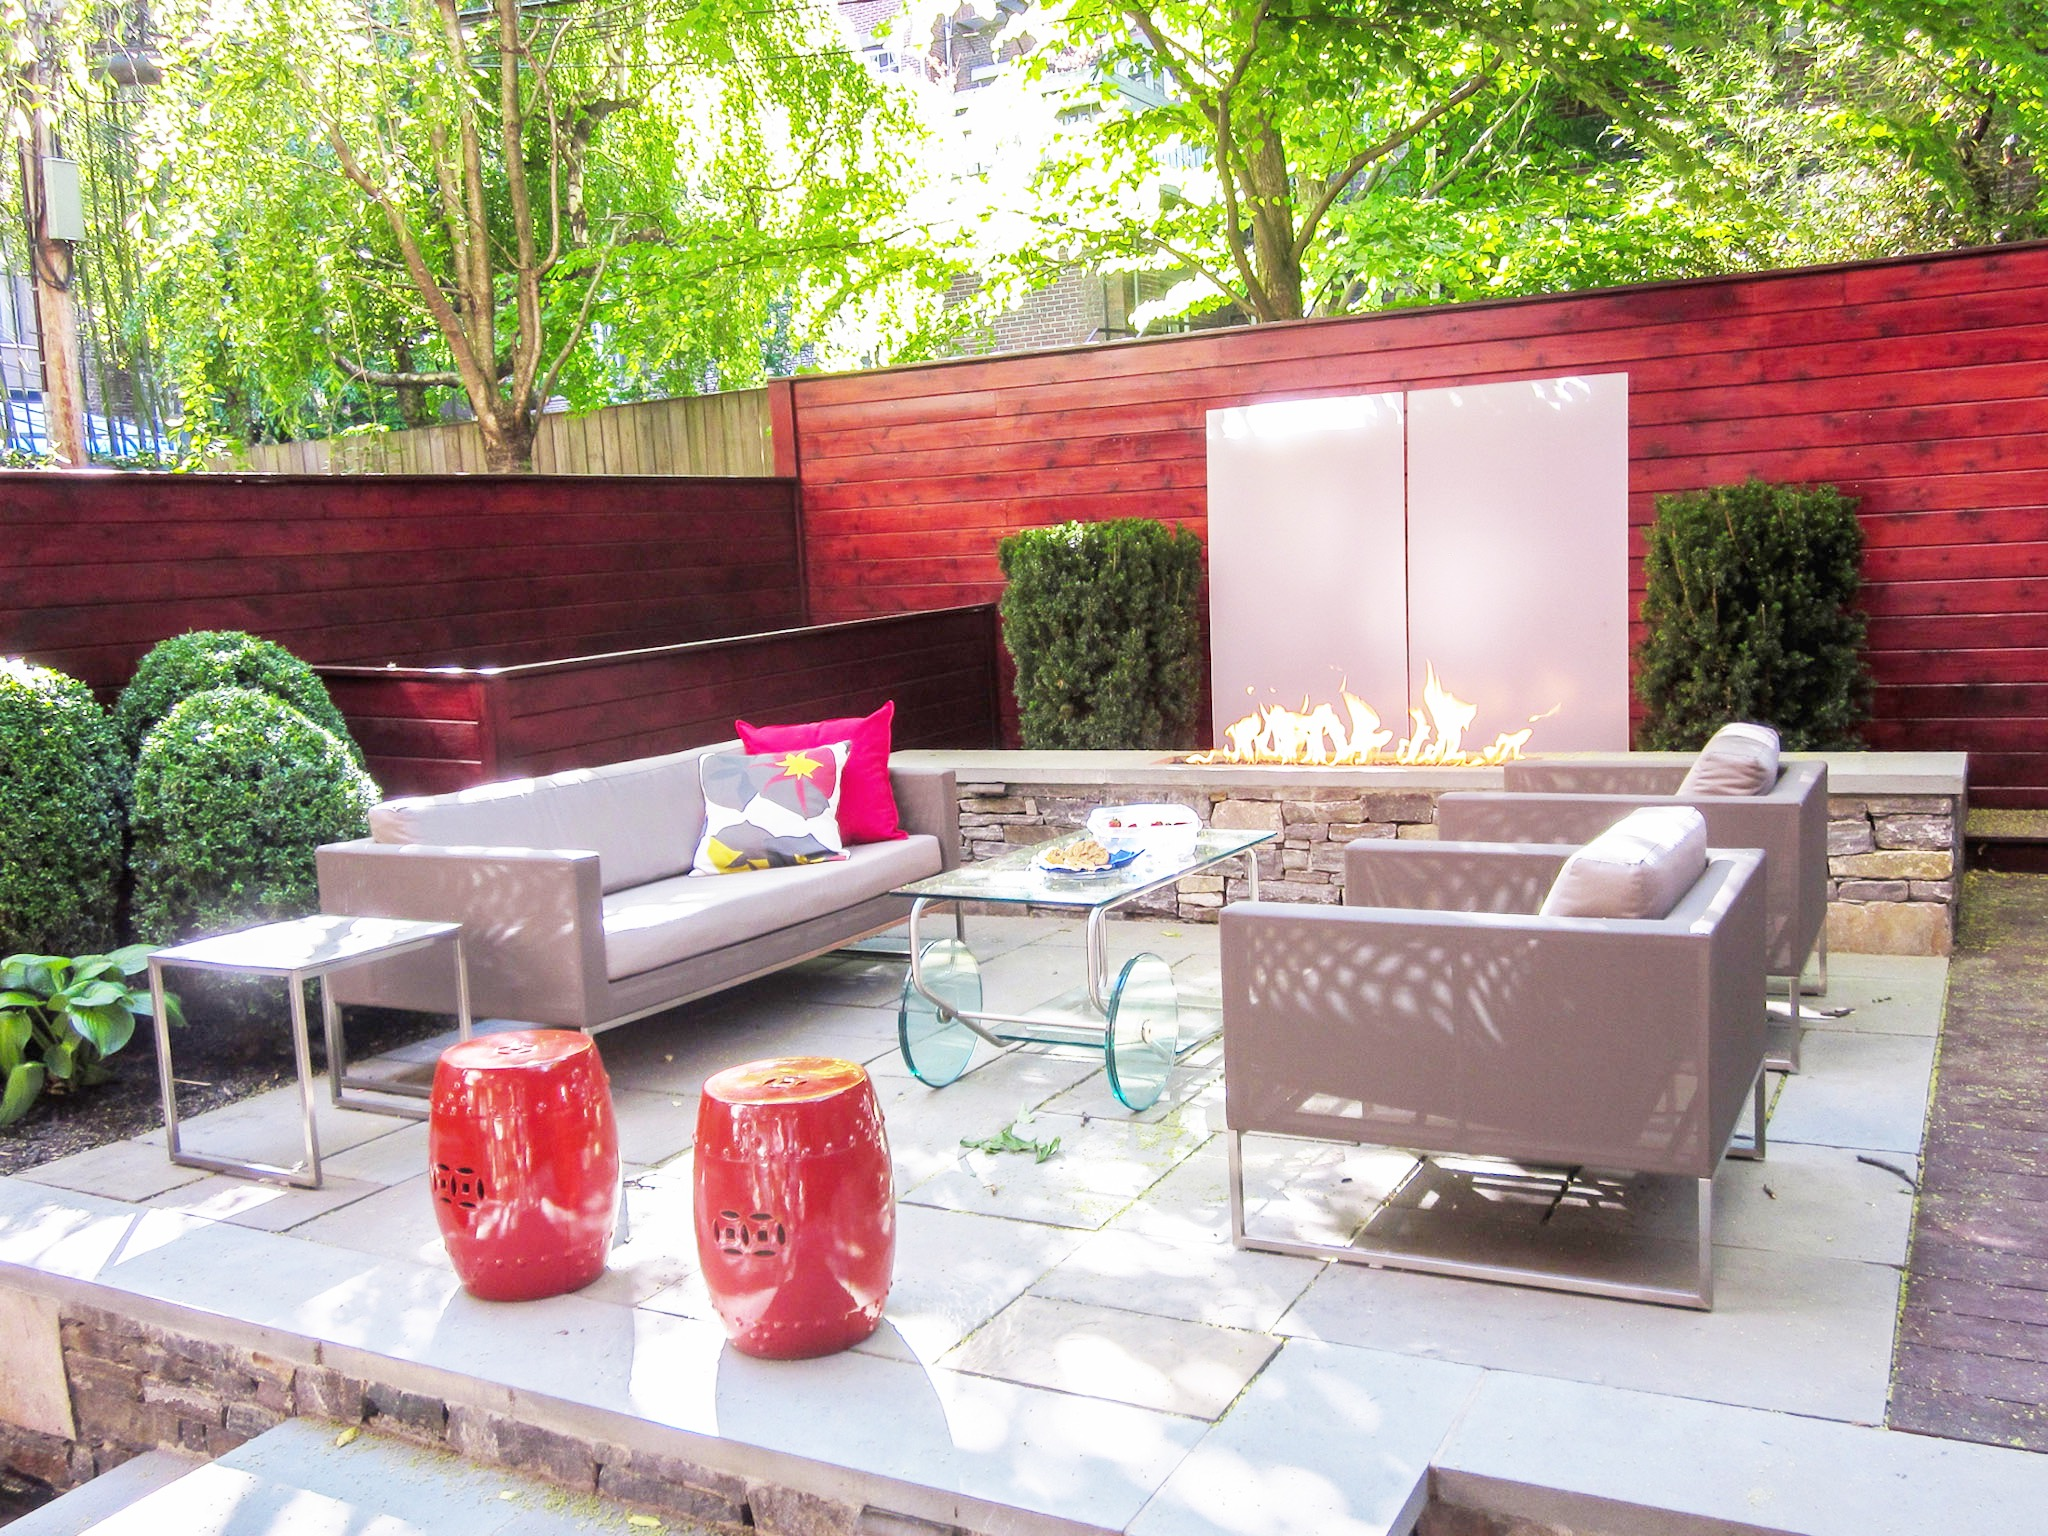 Contemporary Garden Patio With Fire Pit And Glass Coffee Table (Image 12 of 35)